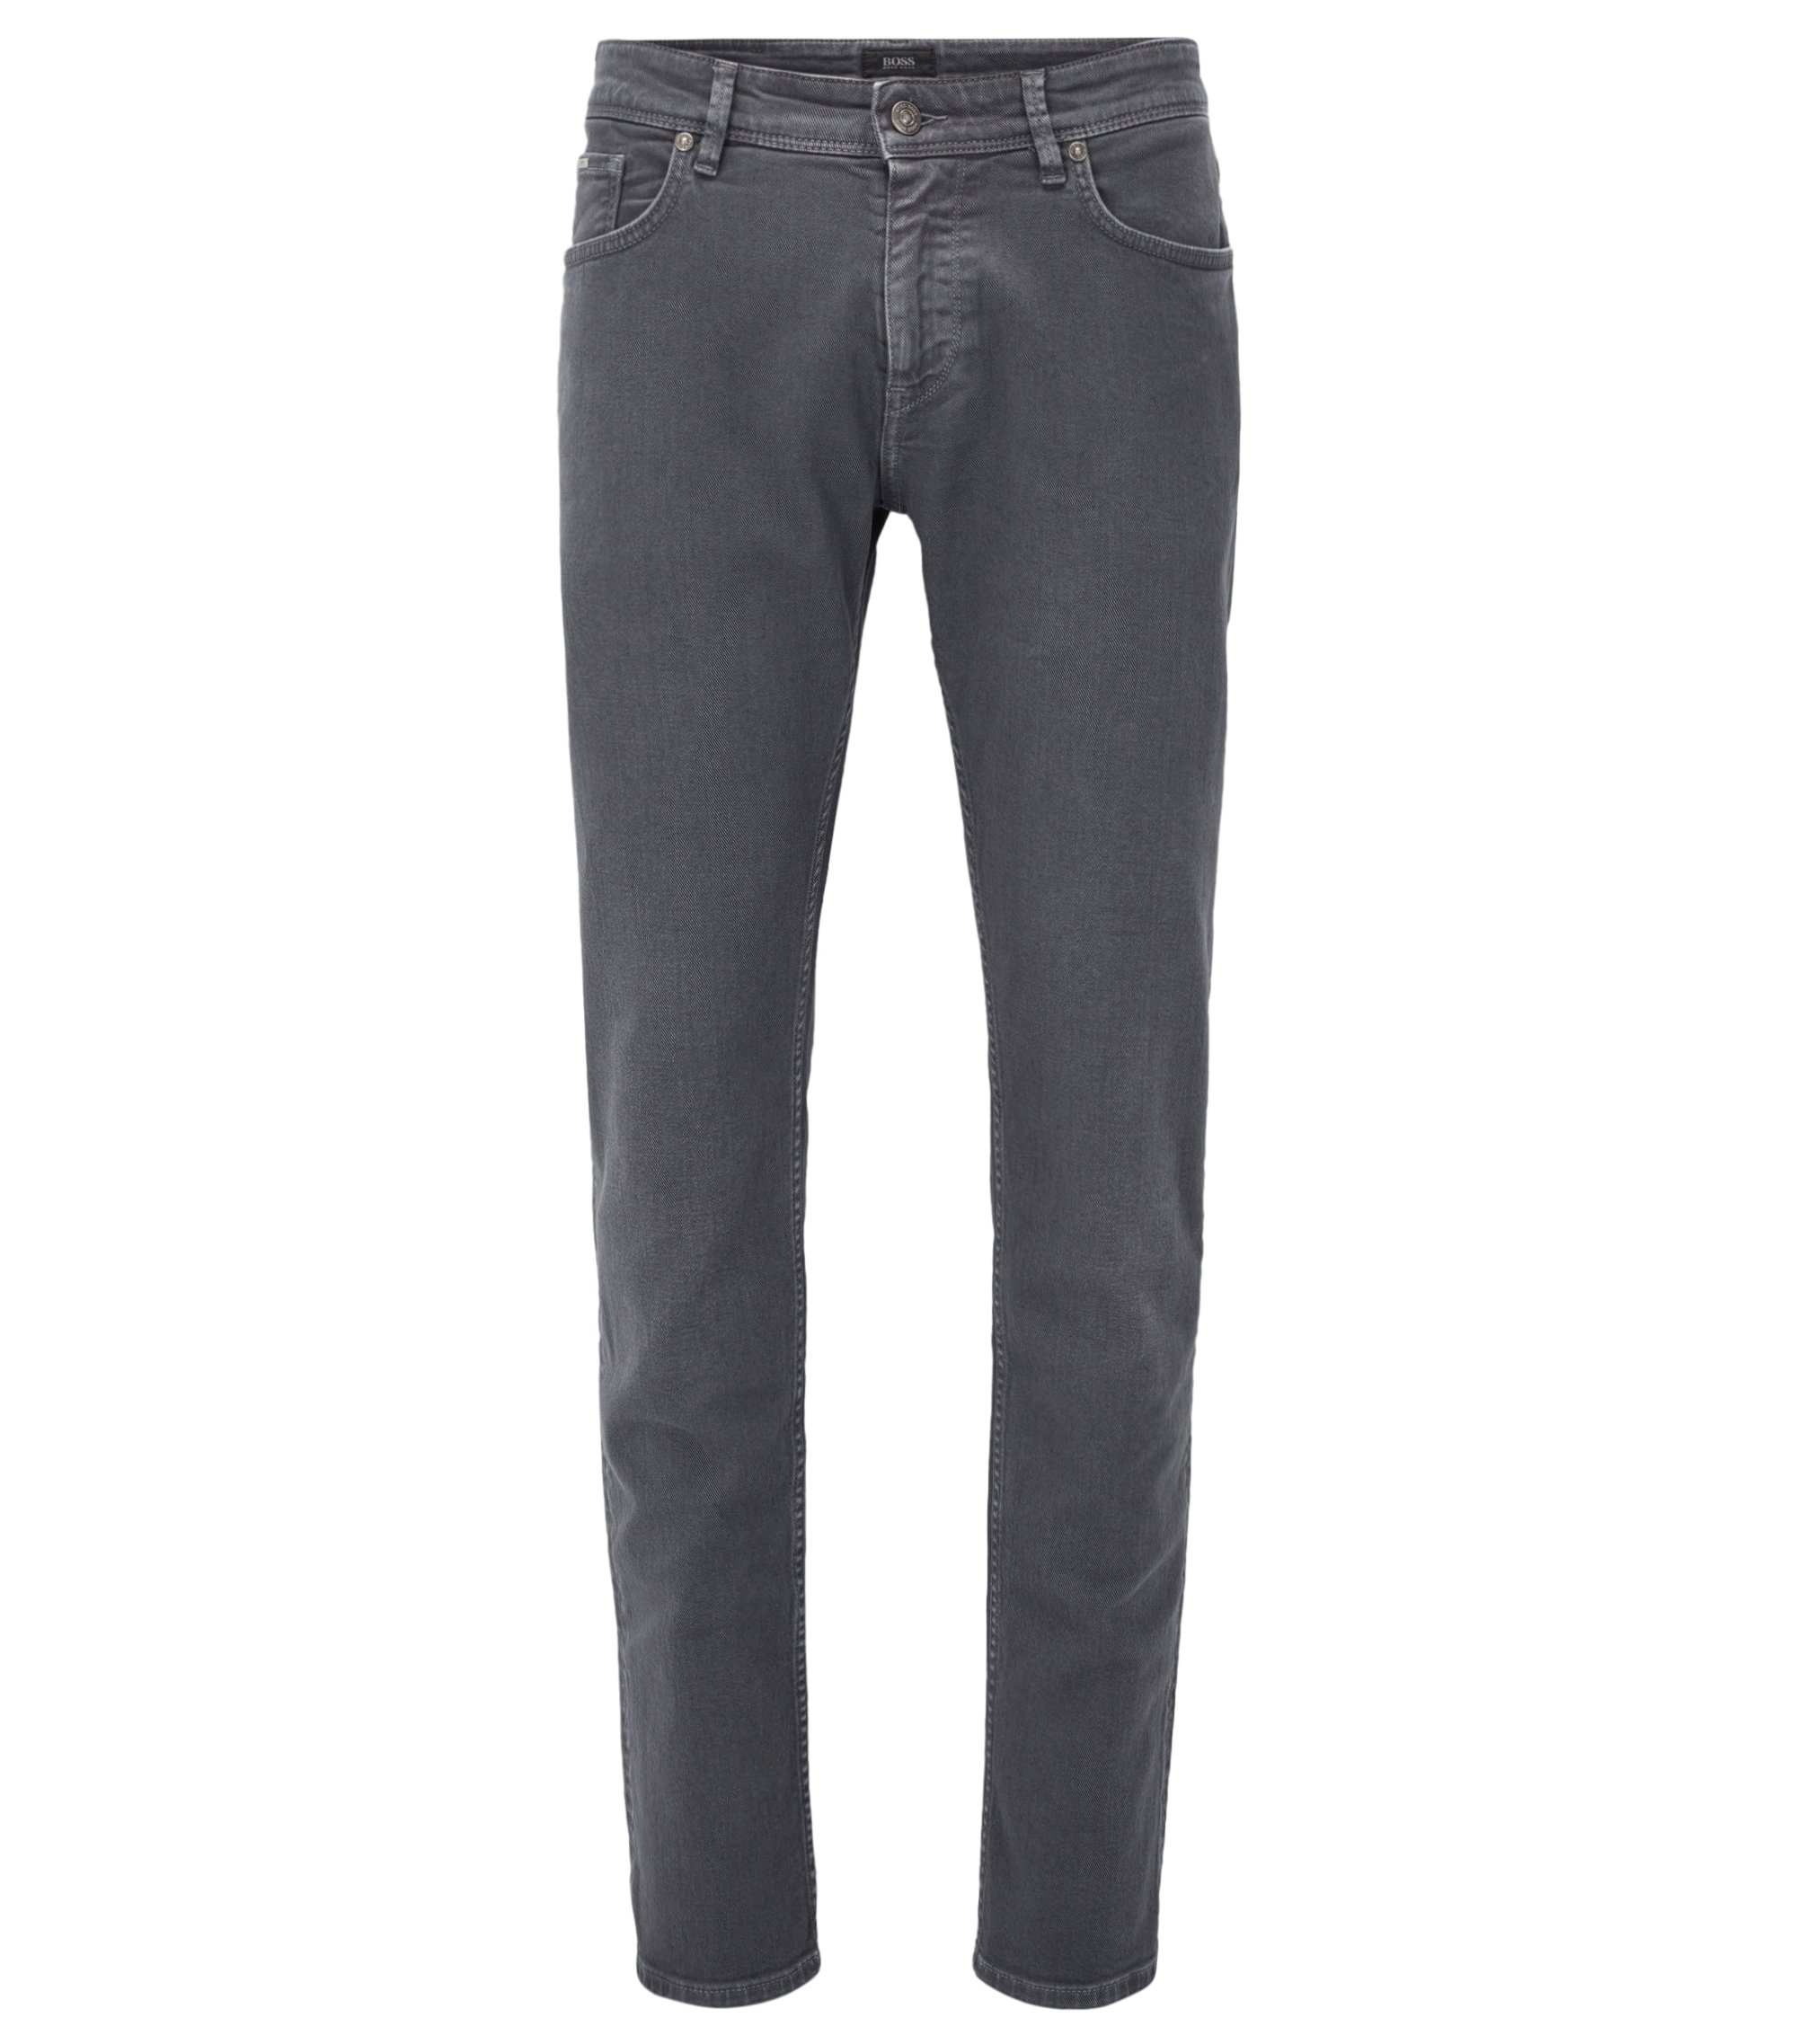 Jean Slim Fit en denim teint confortable, Gris sombre